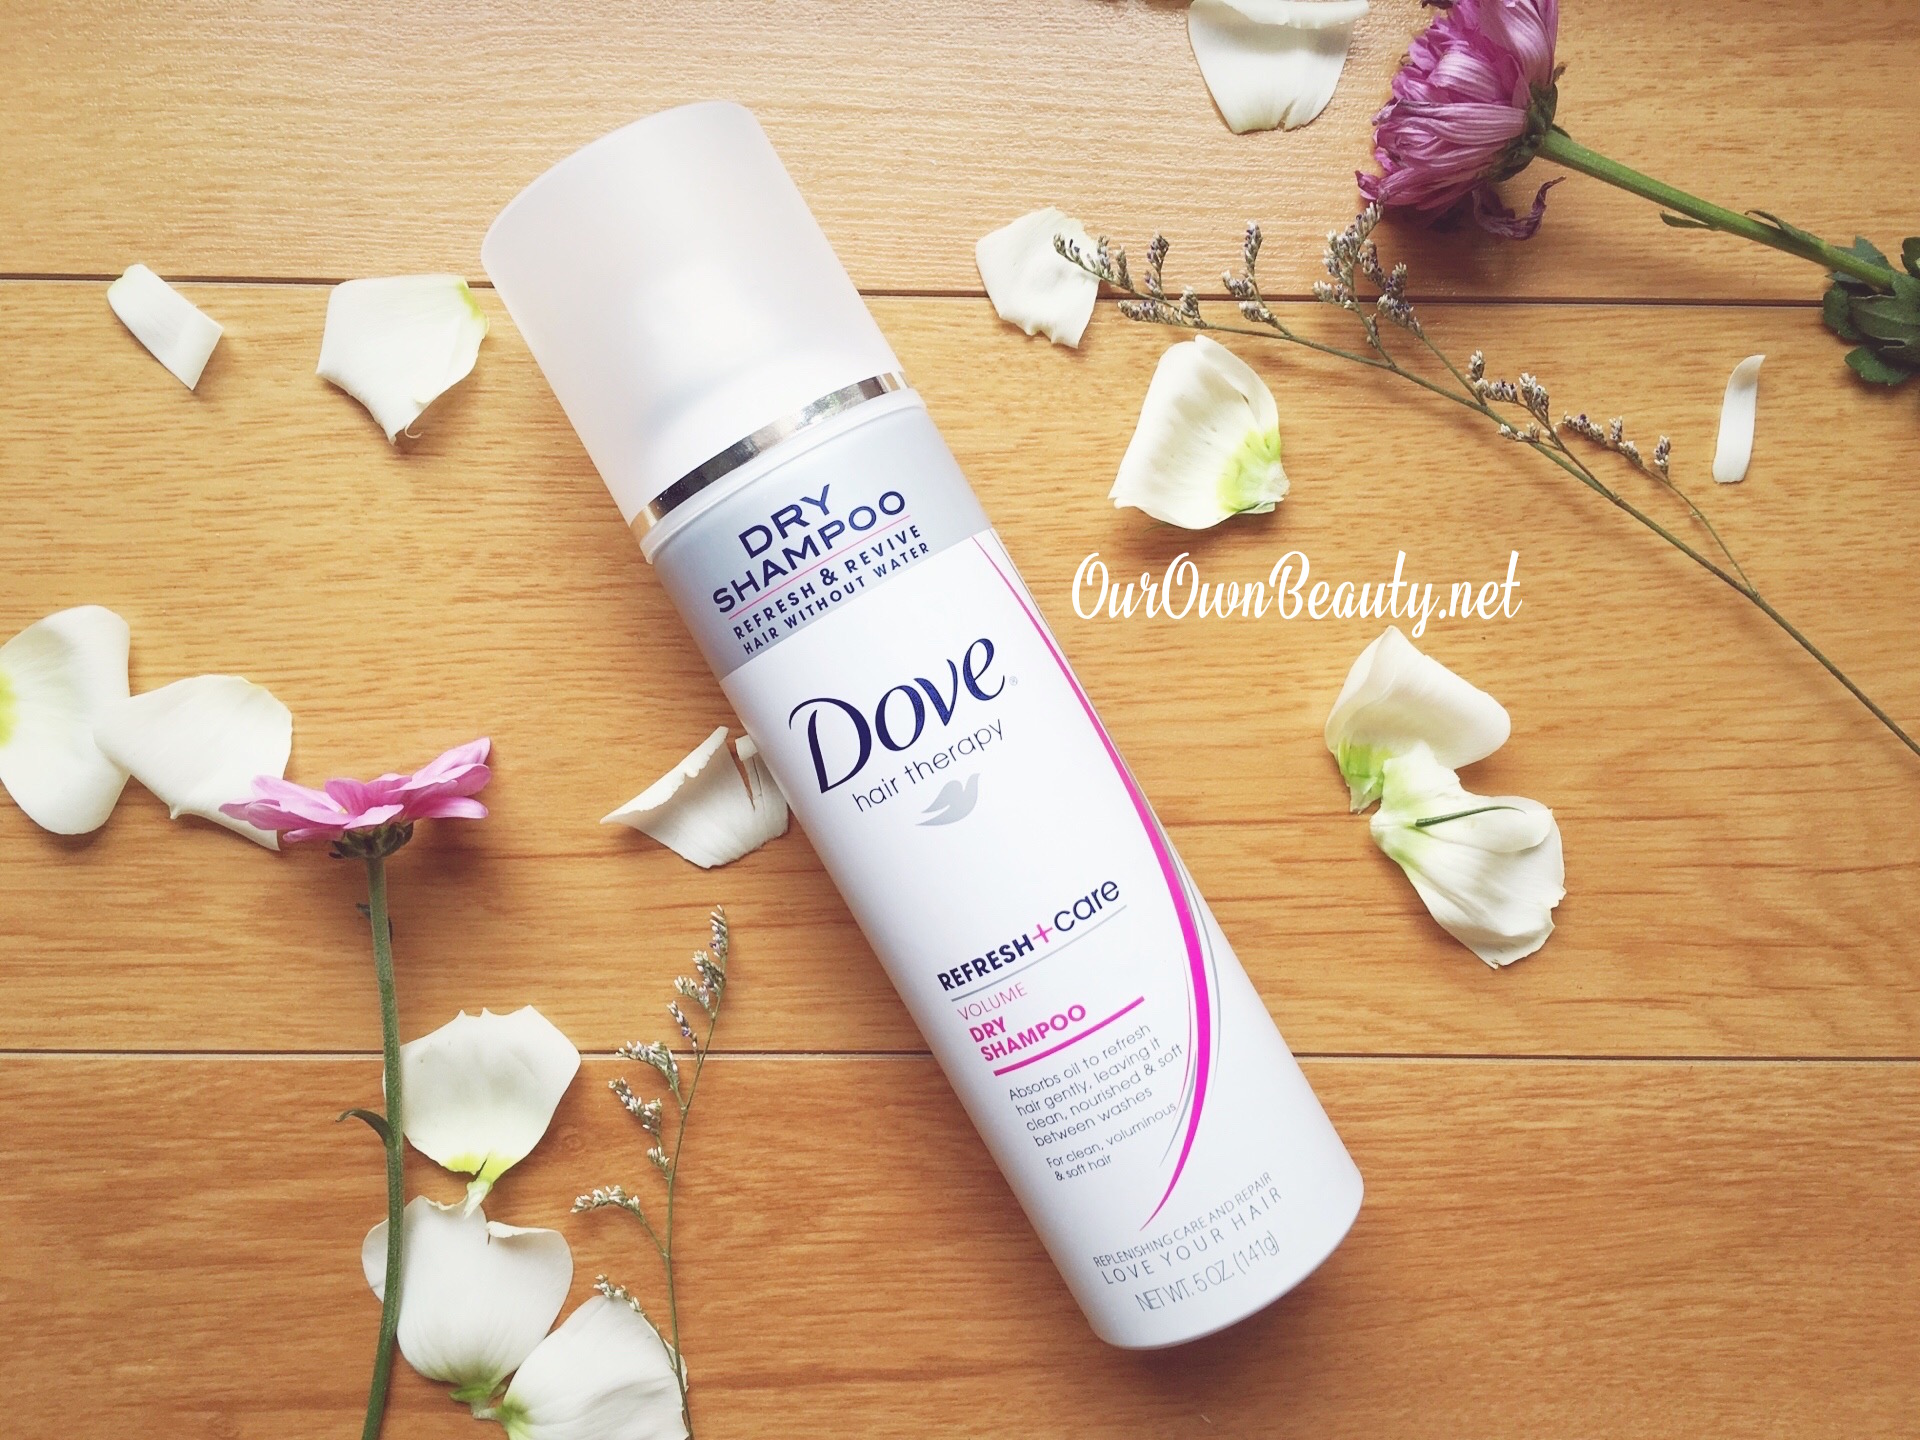 Dove Refresh + Care Invigorating Shampoo | Stinky Hair? Get Rid Of It With These Amazing Hair Products